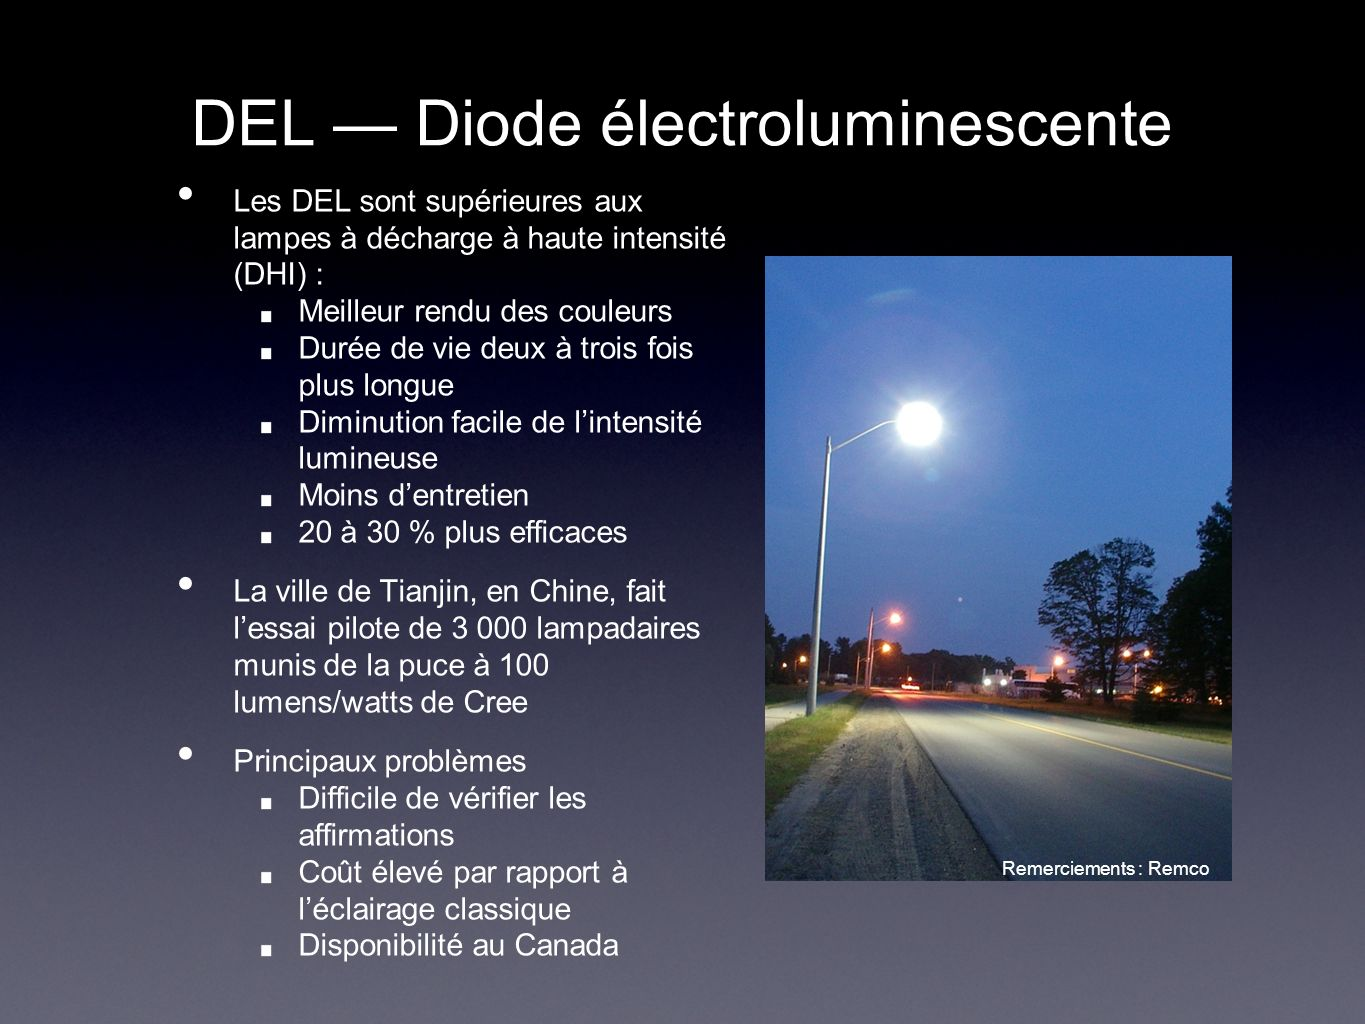 DEL — Diode électroluminescente